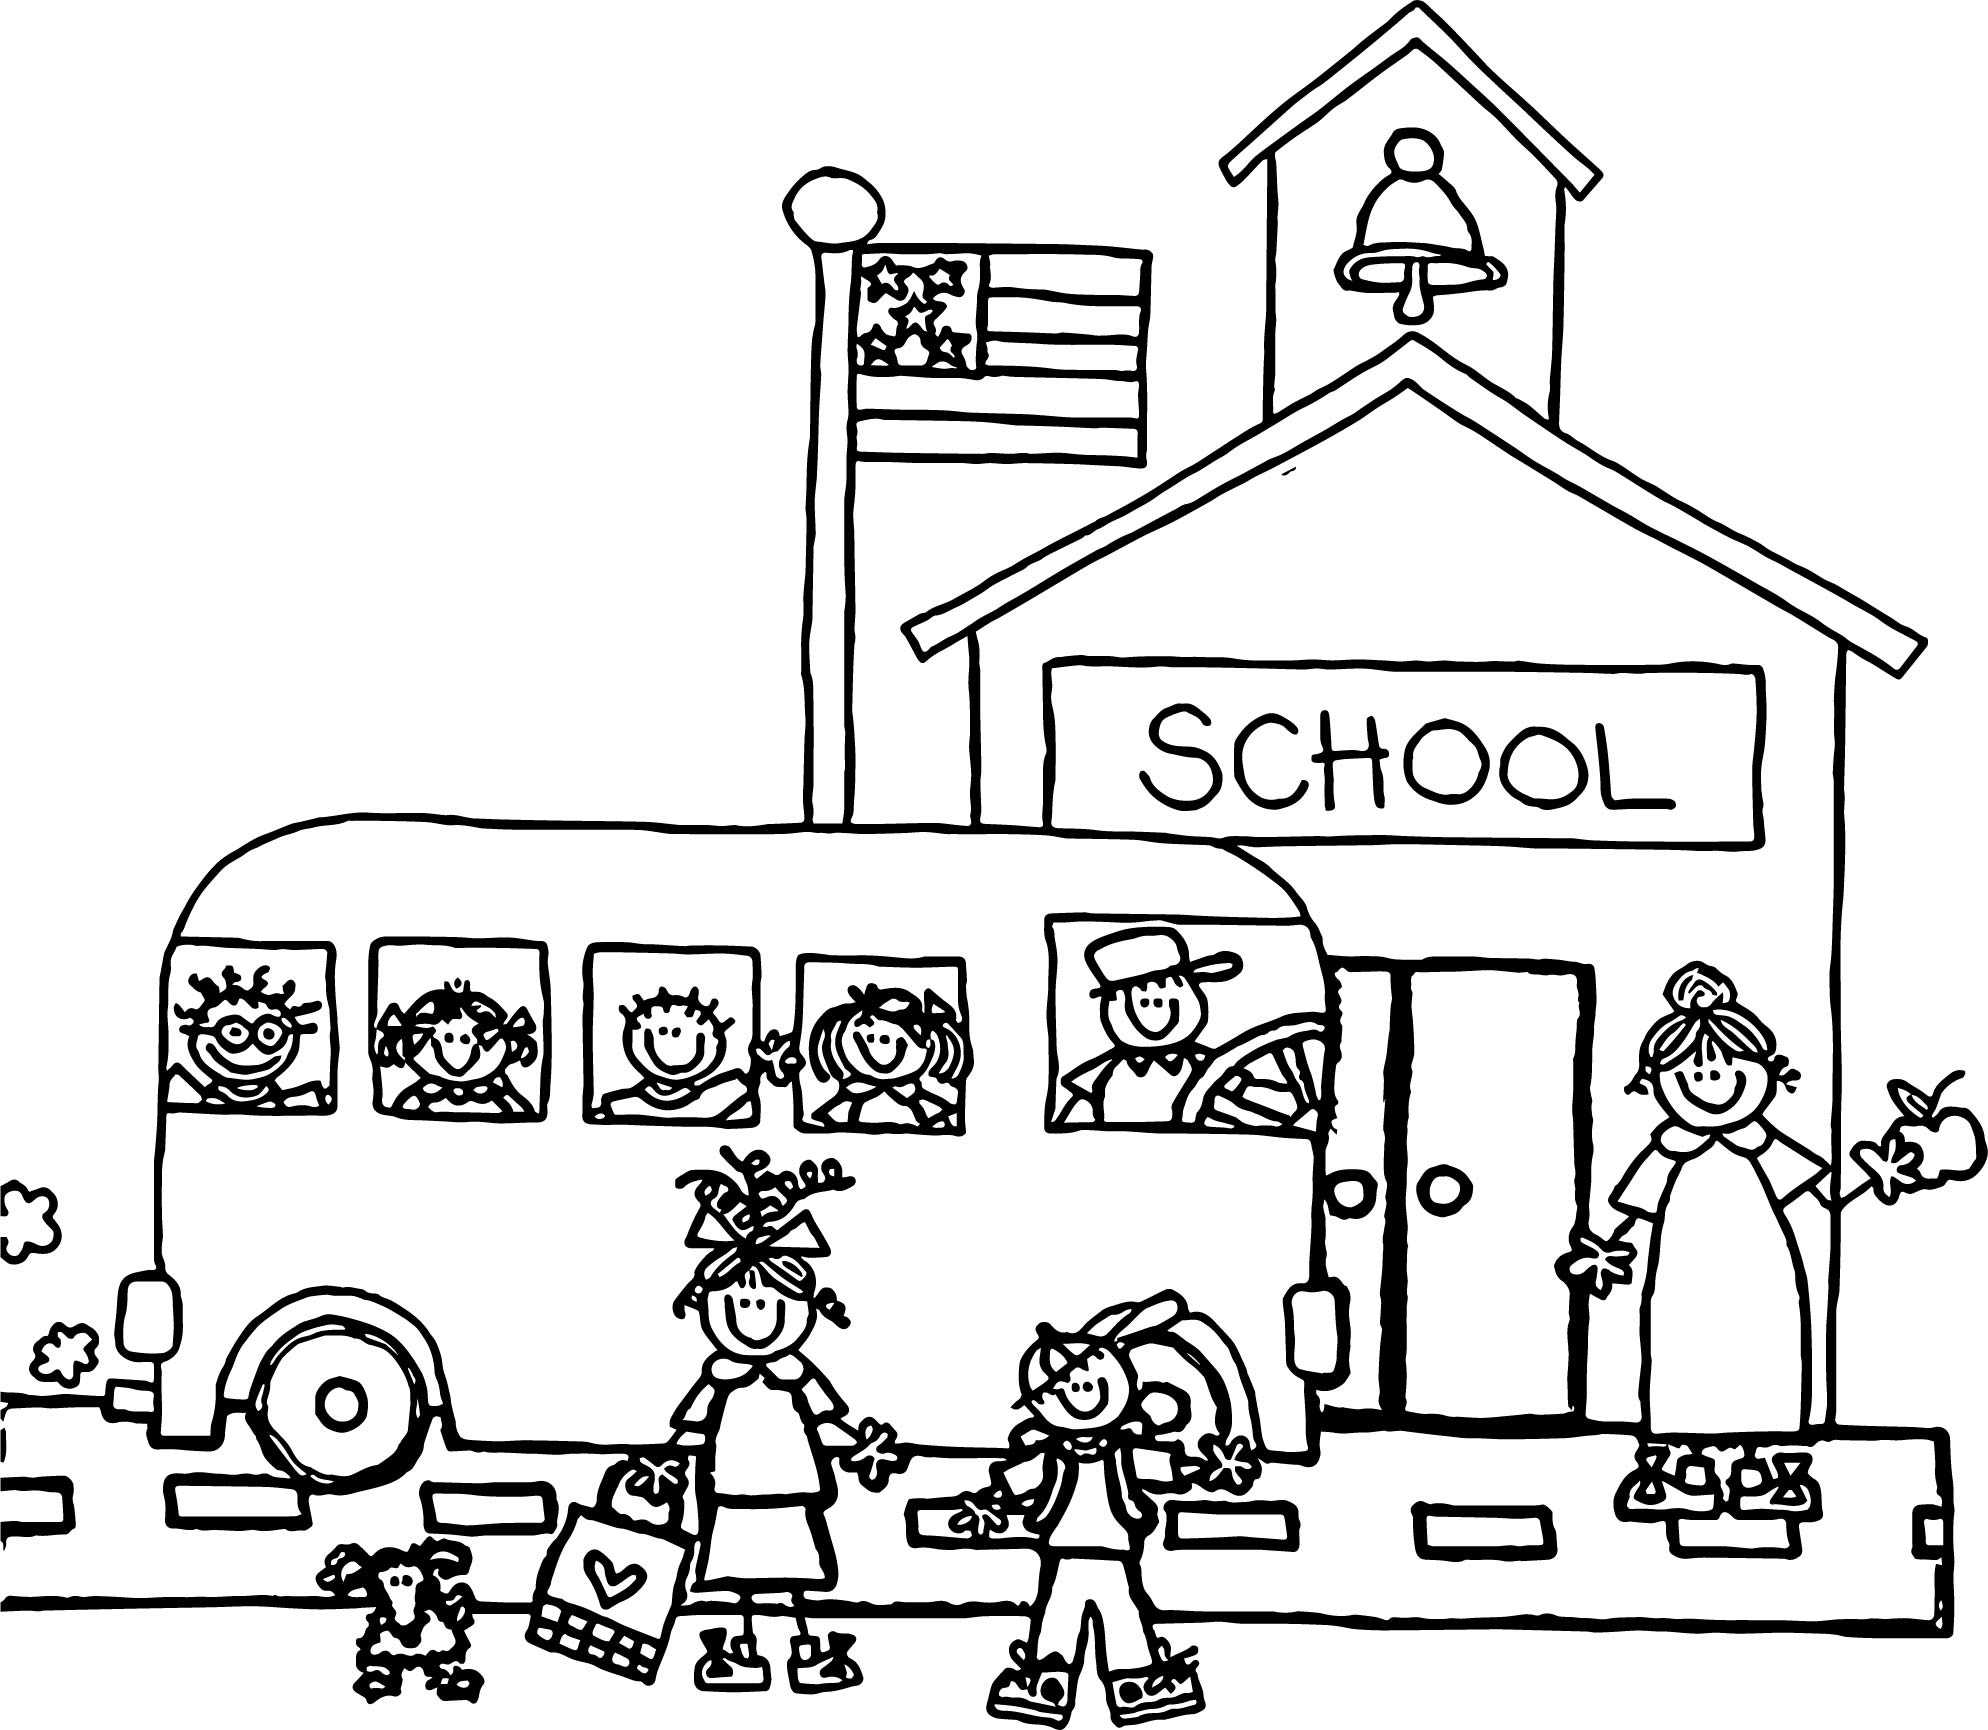 Preschool school coloring page for Coloring page for preschool